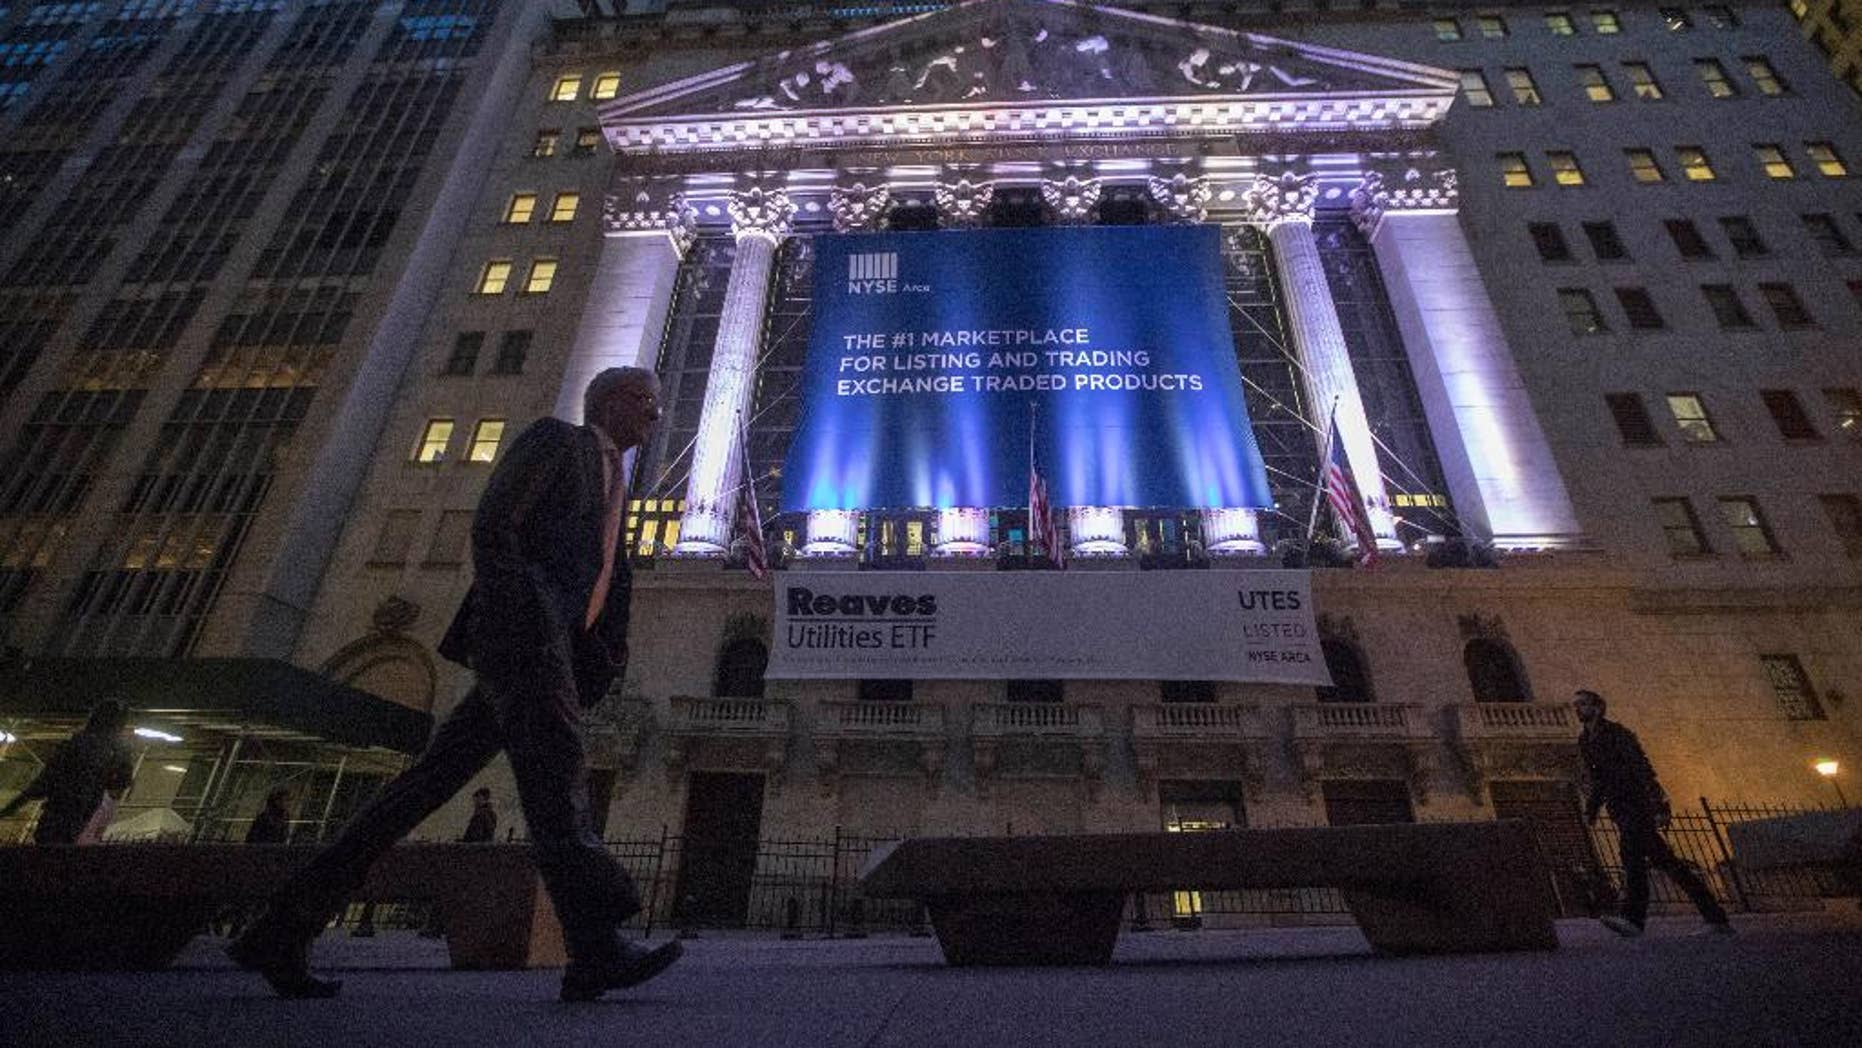 FILE - In this Oct. 25, 2016, photo, a pedestrian passes the New York Stock Exchange, in lower Manhattan. U.S. stocks edged higher Friday morning, Dec. 30, 2016, on the final day of trading for the year. High-dividend stocks like phone companies and utilities fell the most, giving back some of the gains from a day earlier. Real estate stocks led the gainers. Trading was quiet ahead of the New Year's Day holiday. (AP Photo/Mary Altaffer, File)